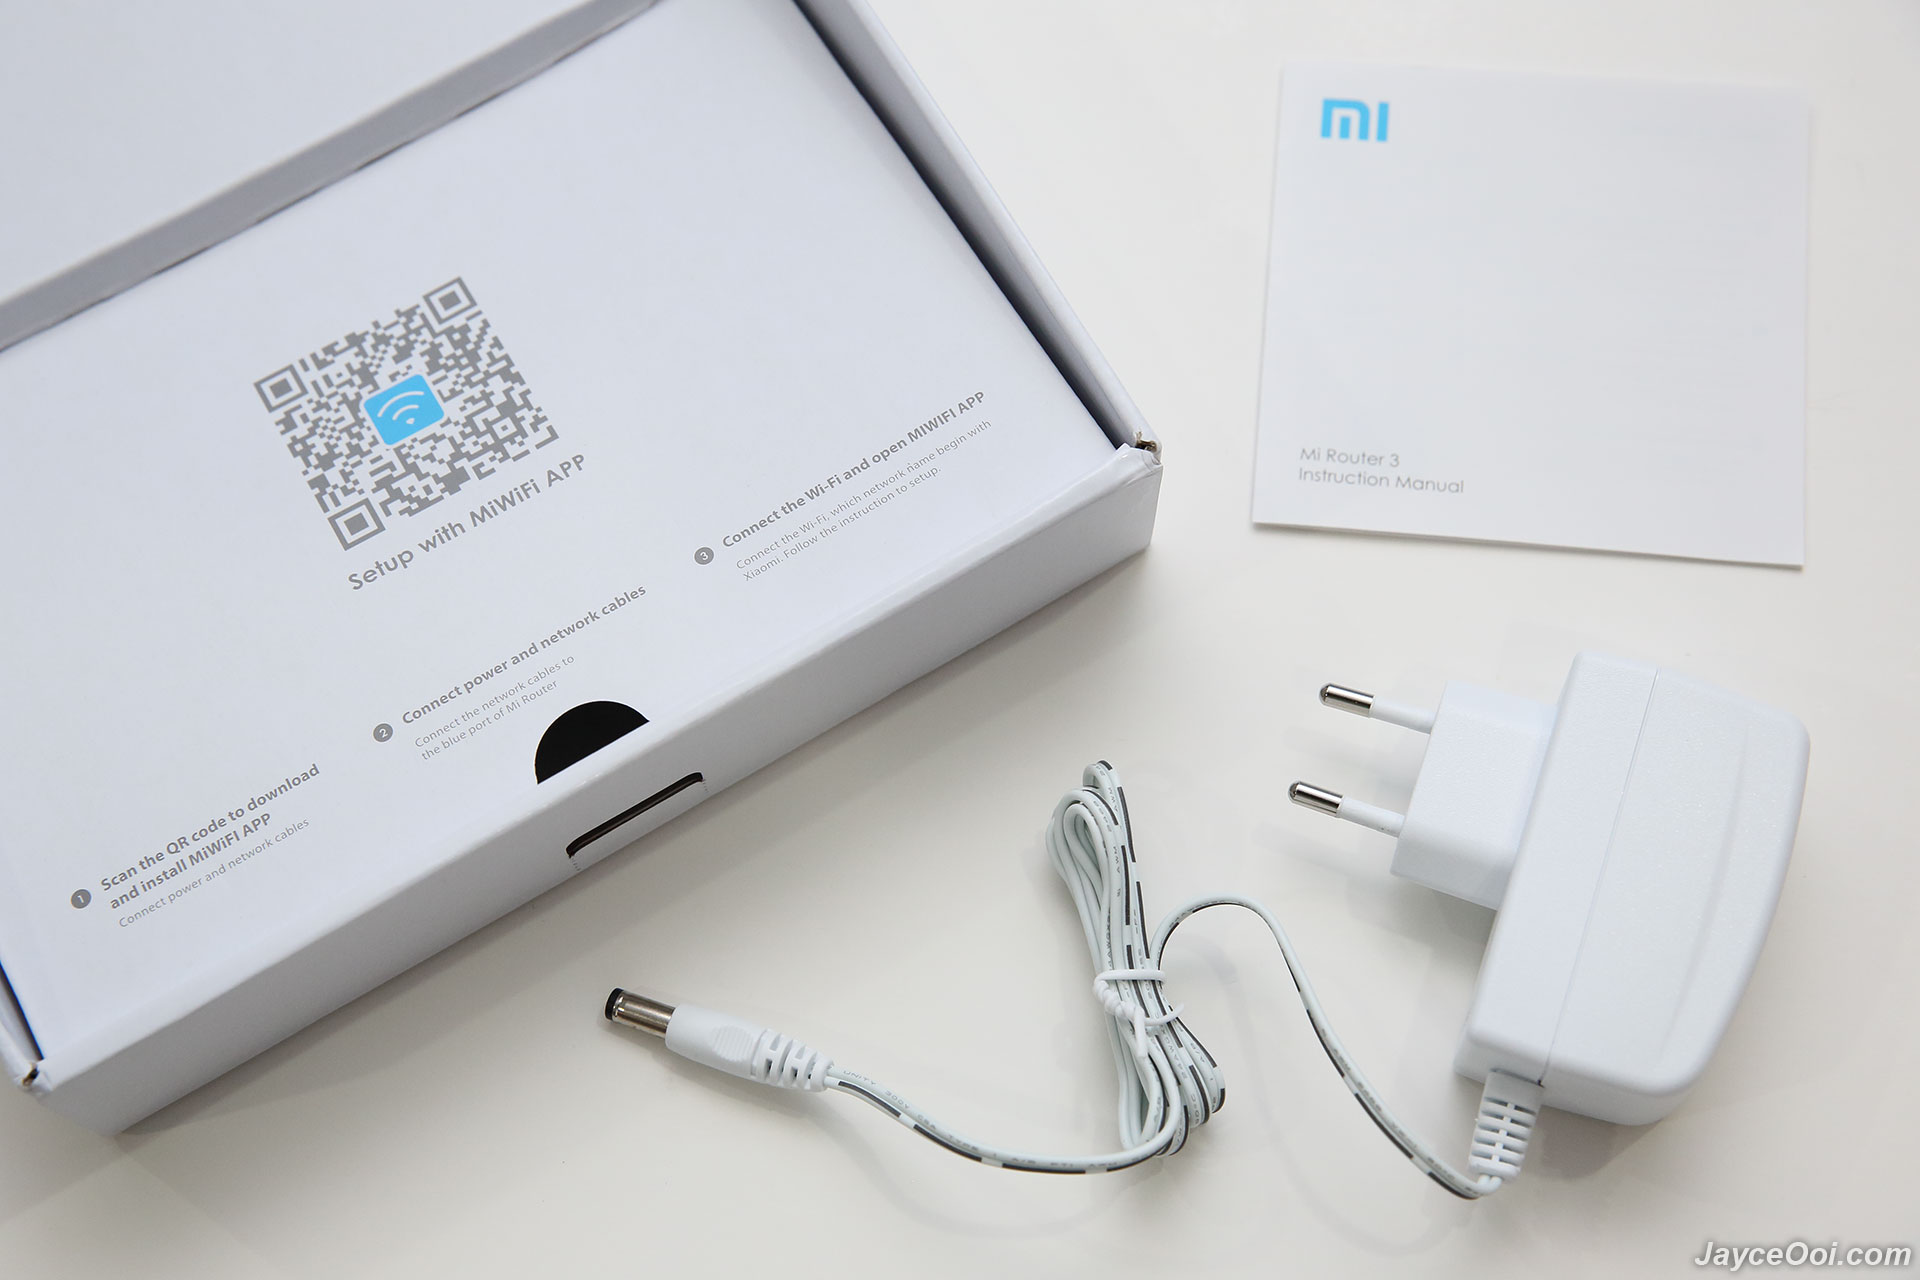 Xiaomi Wifi Router 3 Mi Usb Amplifier 2 Repeater Range Extender Wireless 300mb Http Jayceooicom Wp Content Uploadsrouter 03